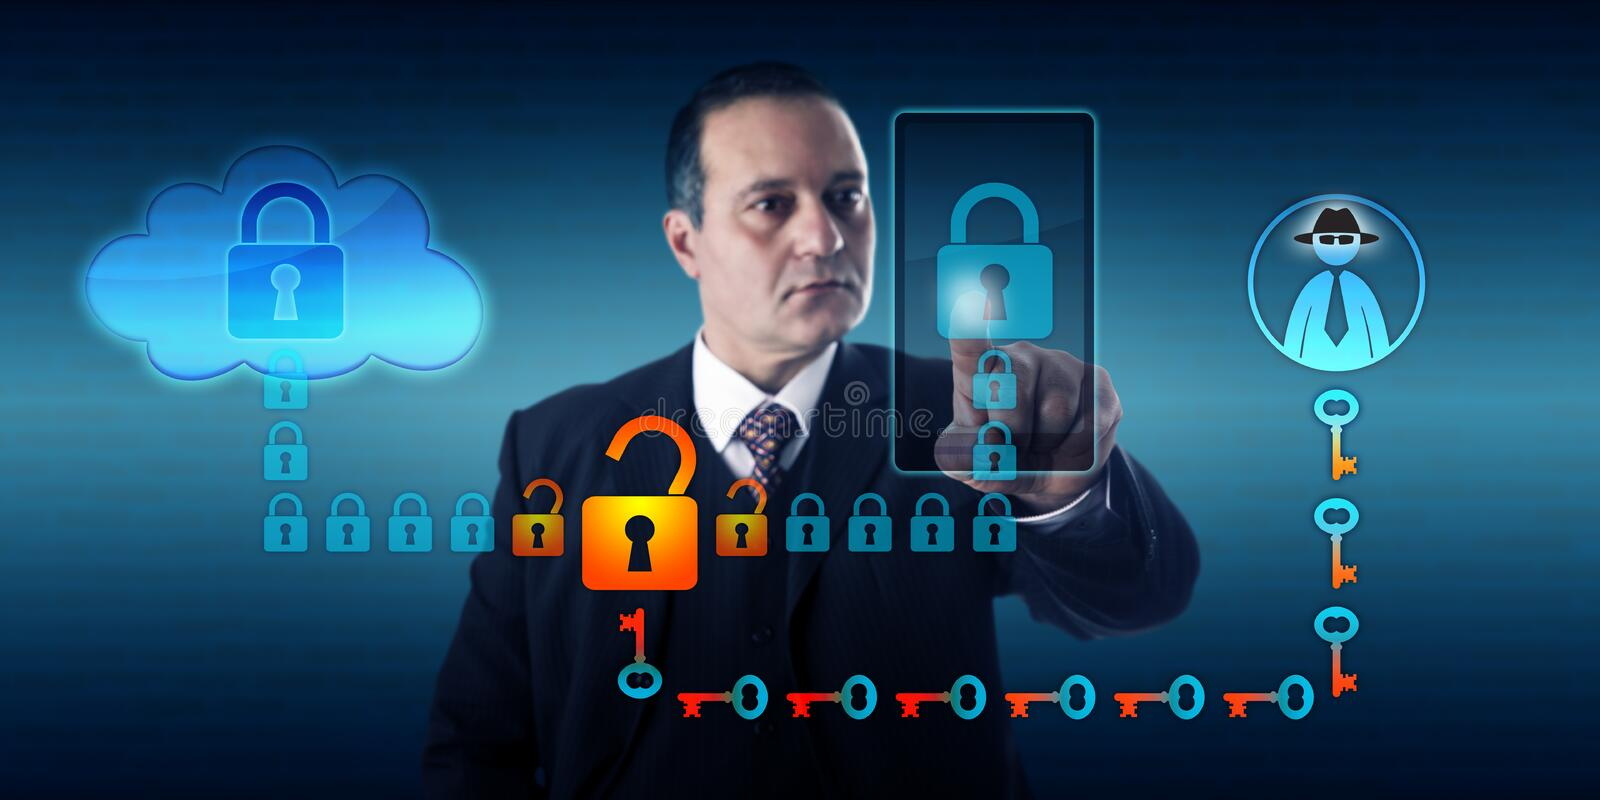 Black Hat Hacker Intercepting Smart Phone. Businessman synchronizing a mobile device with cloud storage. A black hat hacker is intercepting this connection royalty free stock photo